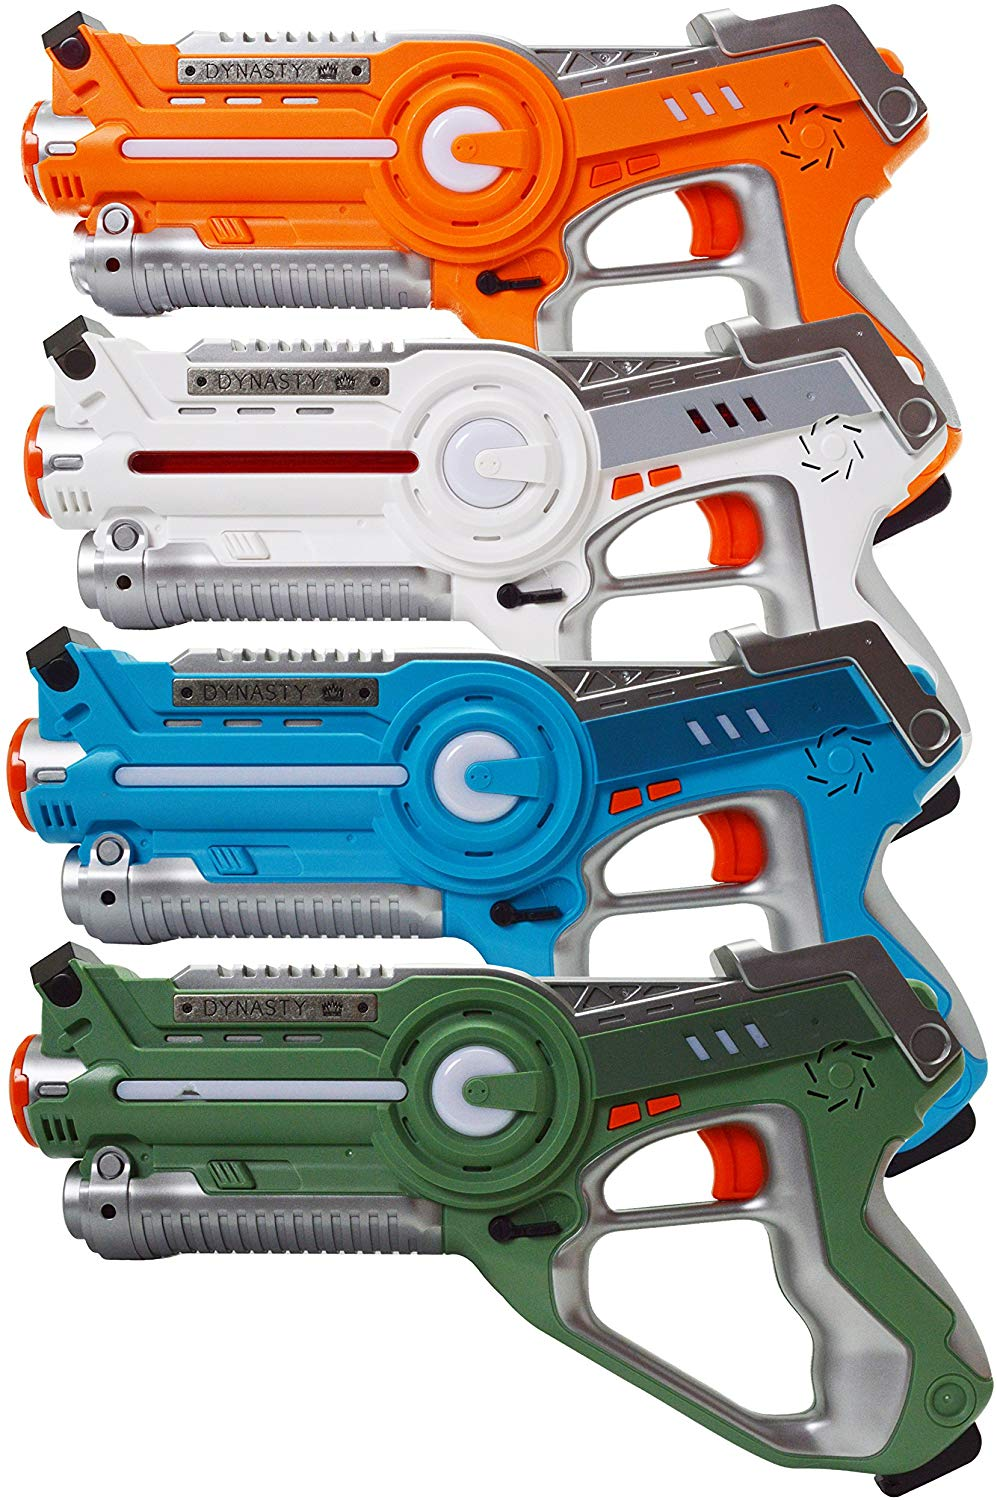 Laser Tag Set Toys and Carrying Case for Kids Multiplayer